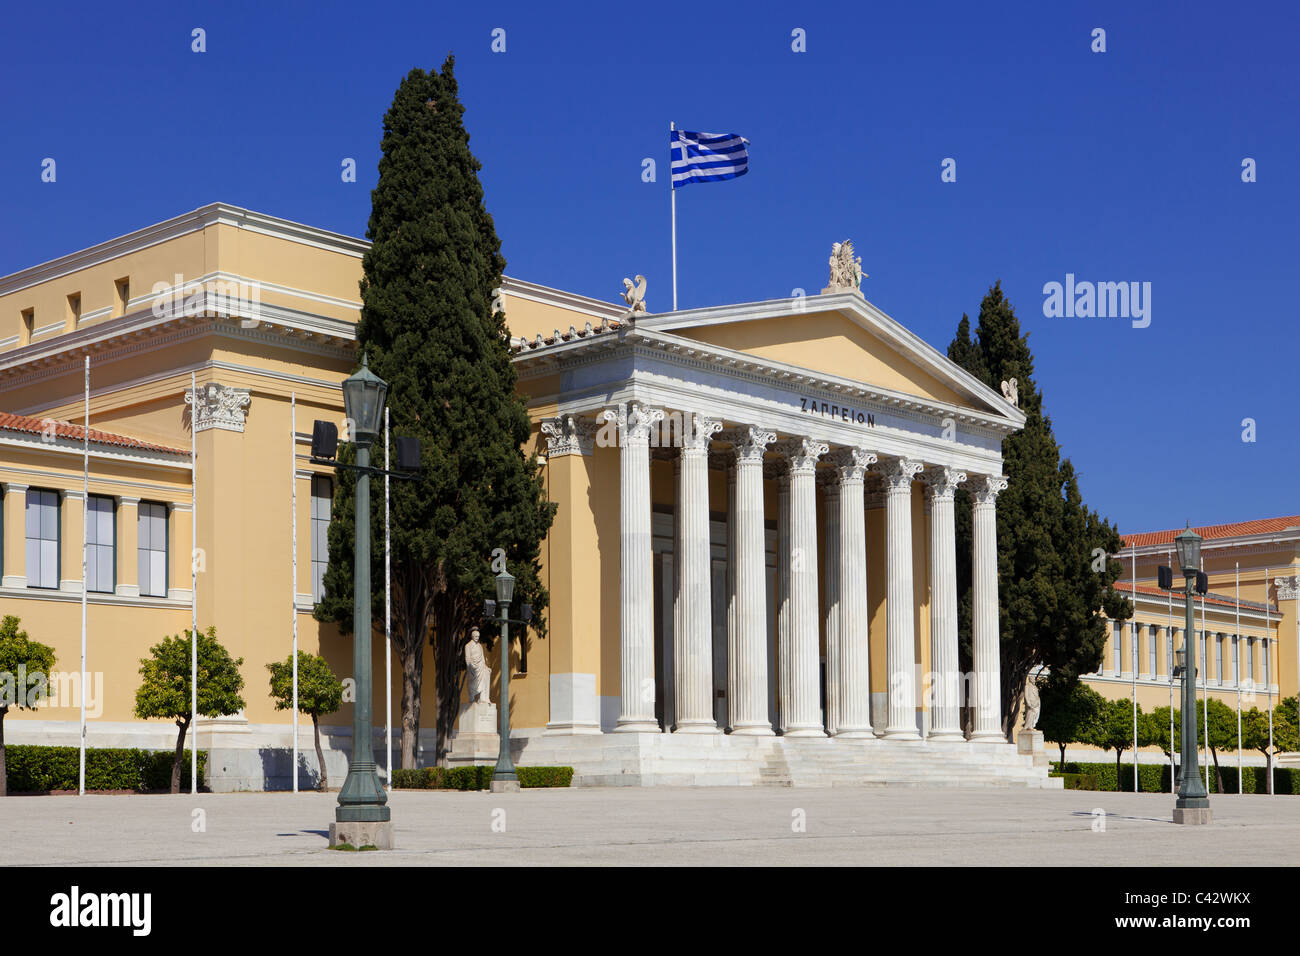 The Zappeion building (1888) used during the 1896 Olympic Games at the National Gardens of Athens, Greece Stock Photo